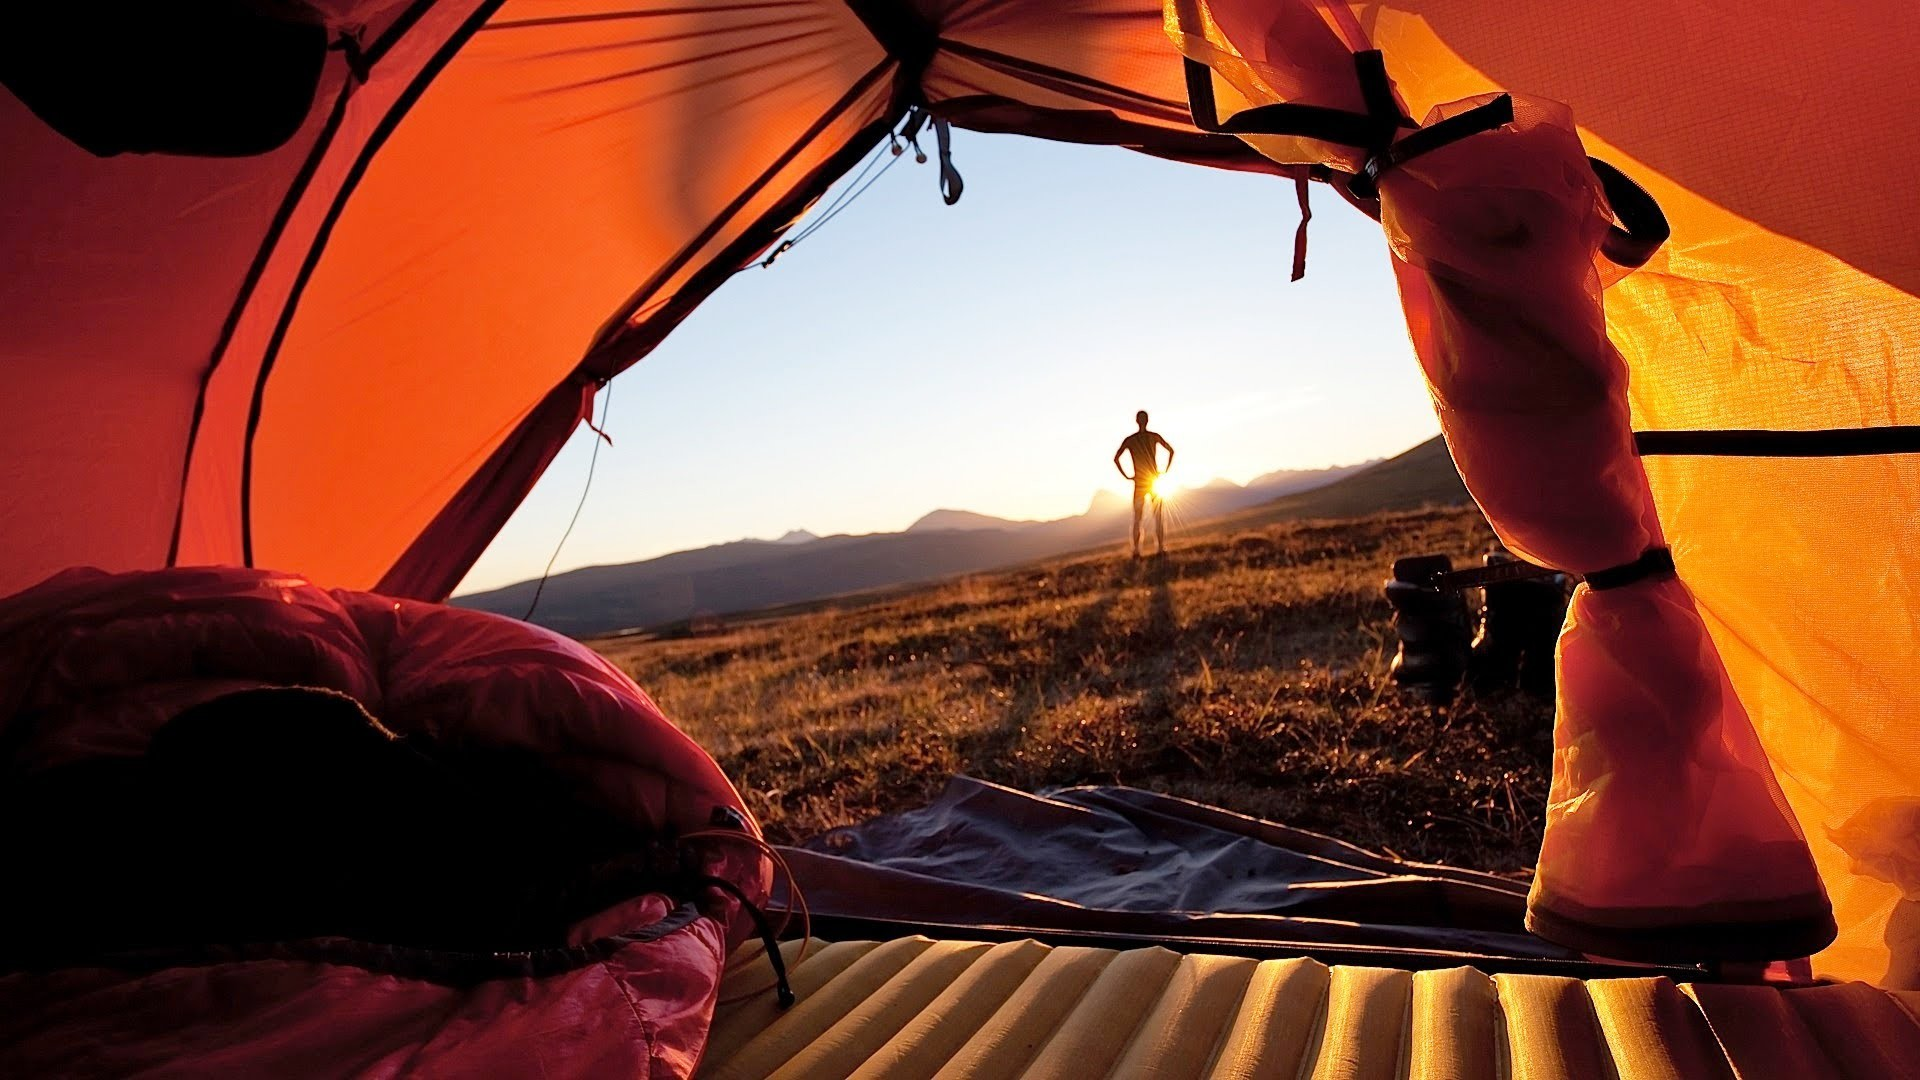 Wiki Camping Backgrounds Desktop Pic Wpc008079 Data Tent Camp 1920x1080 Wallpaper Teahub Io